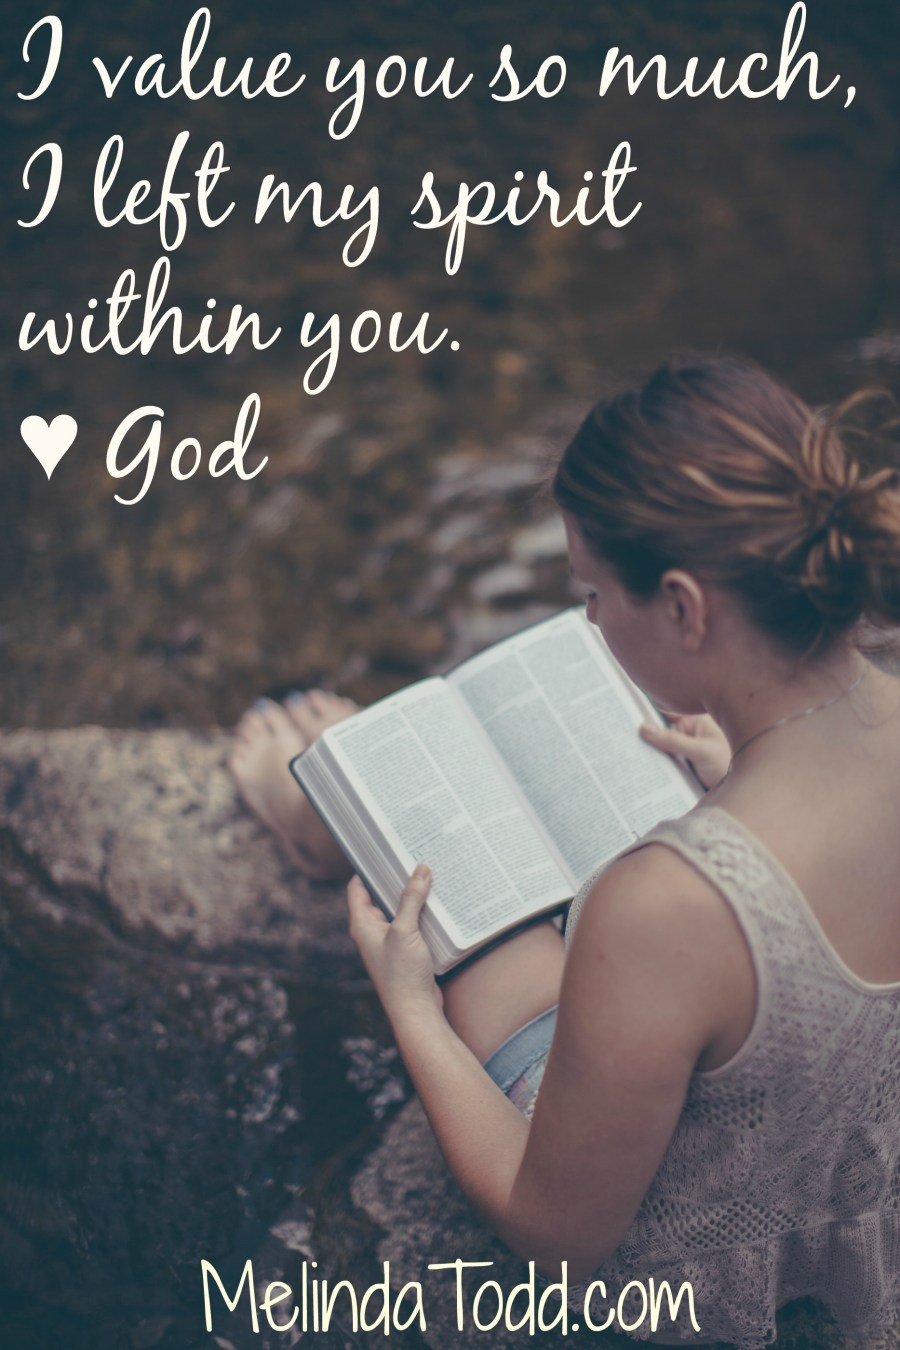 God Values You So Much!